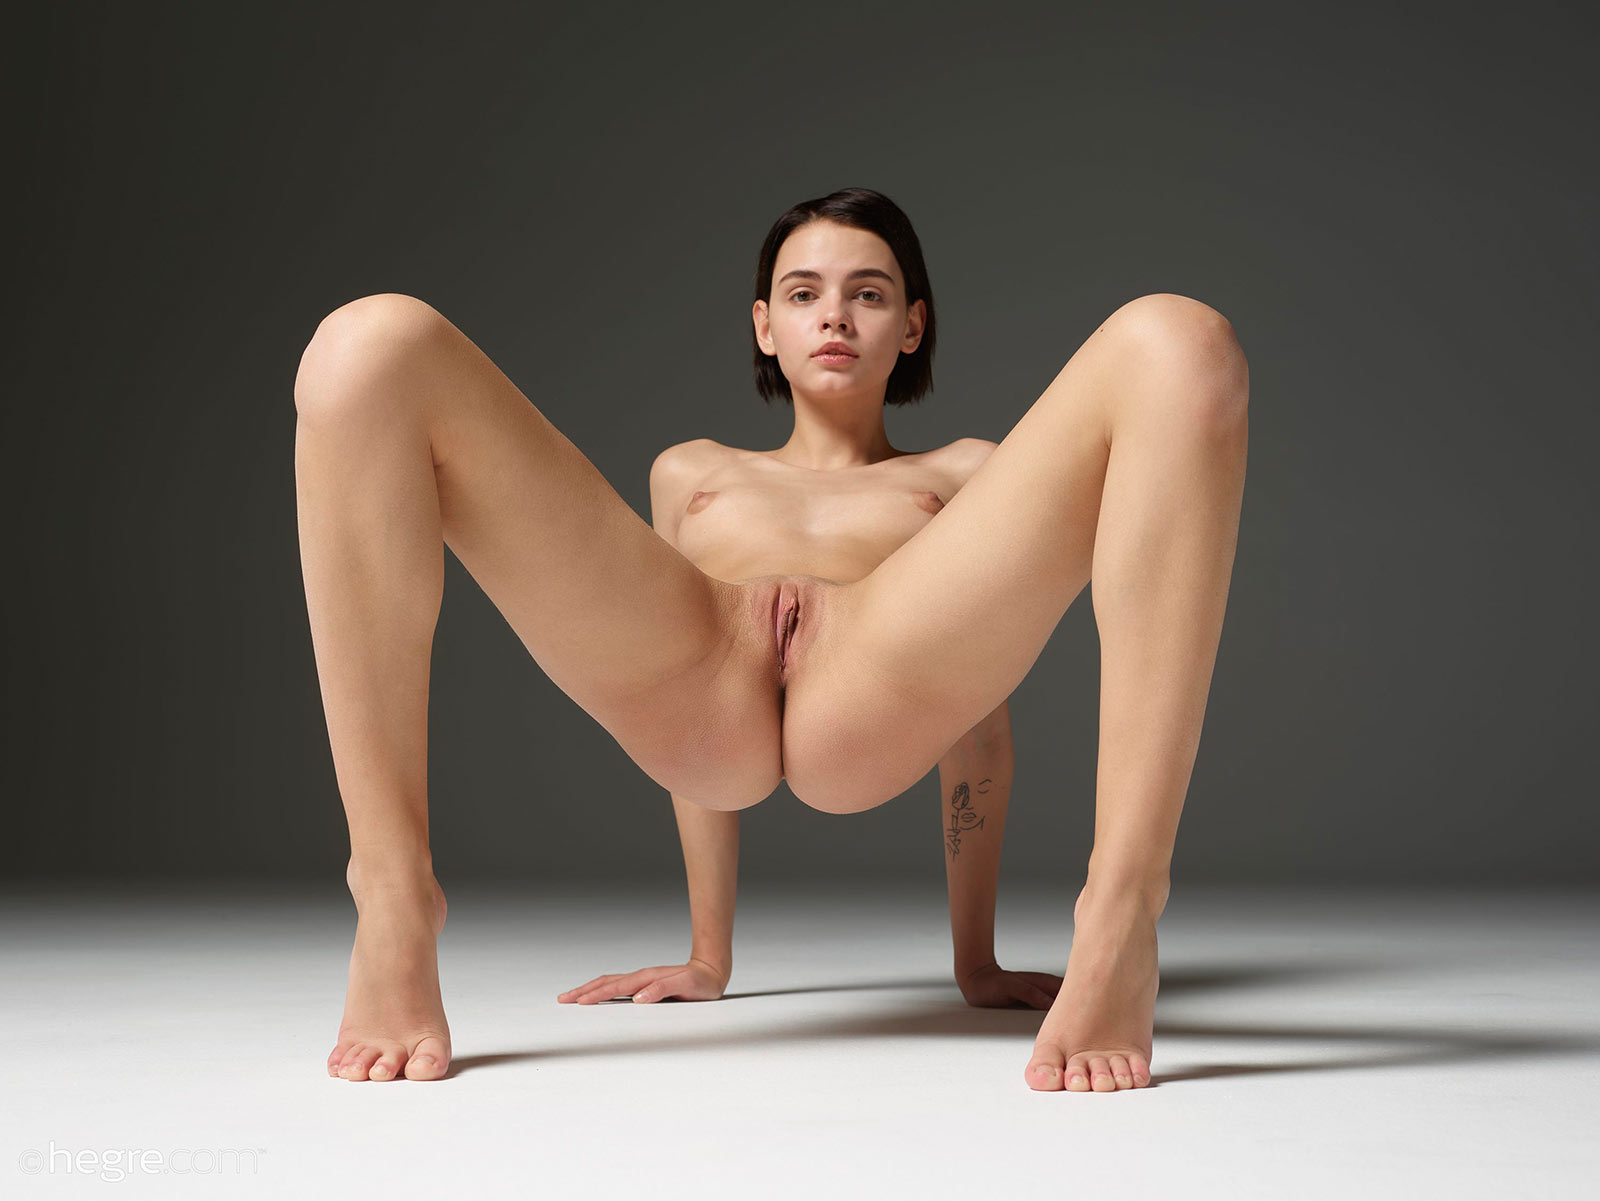 Hegre Nudist Art